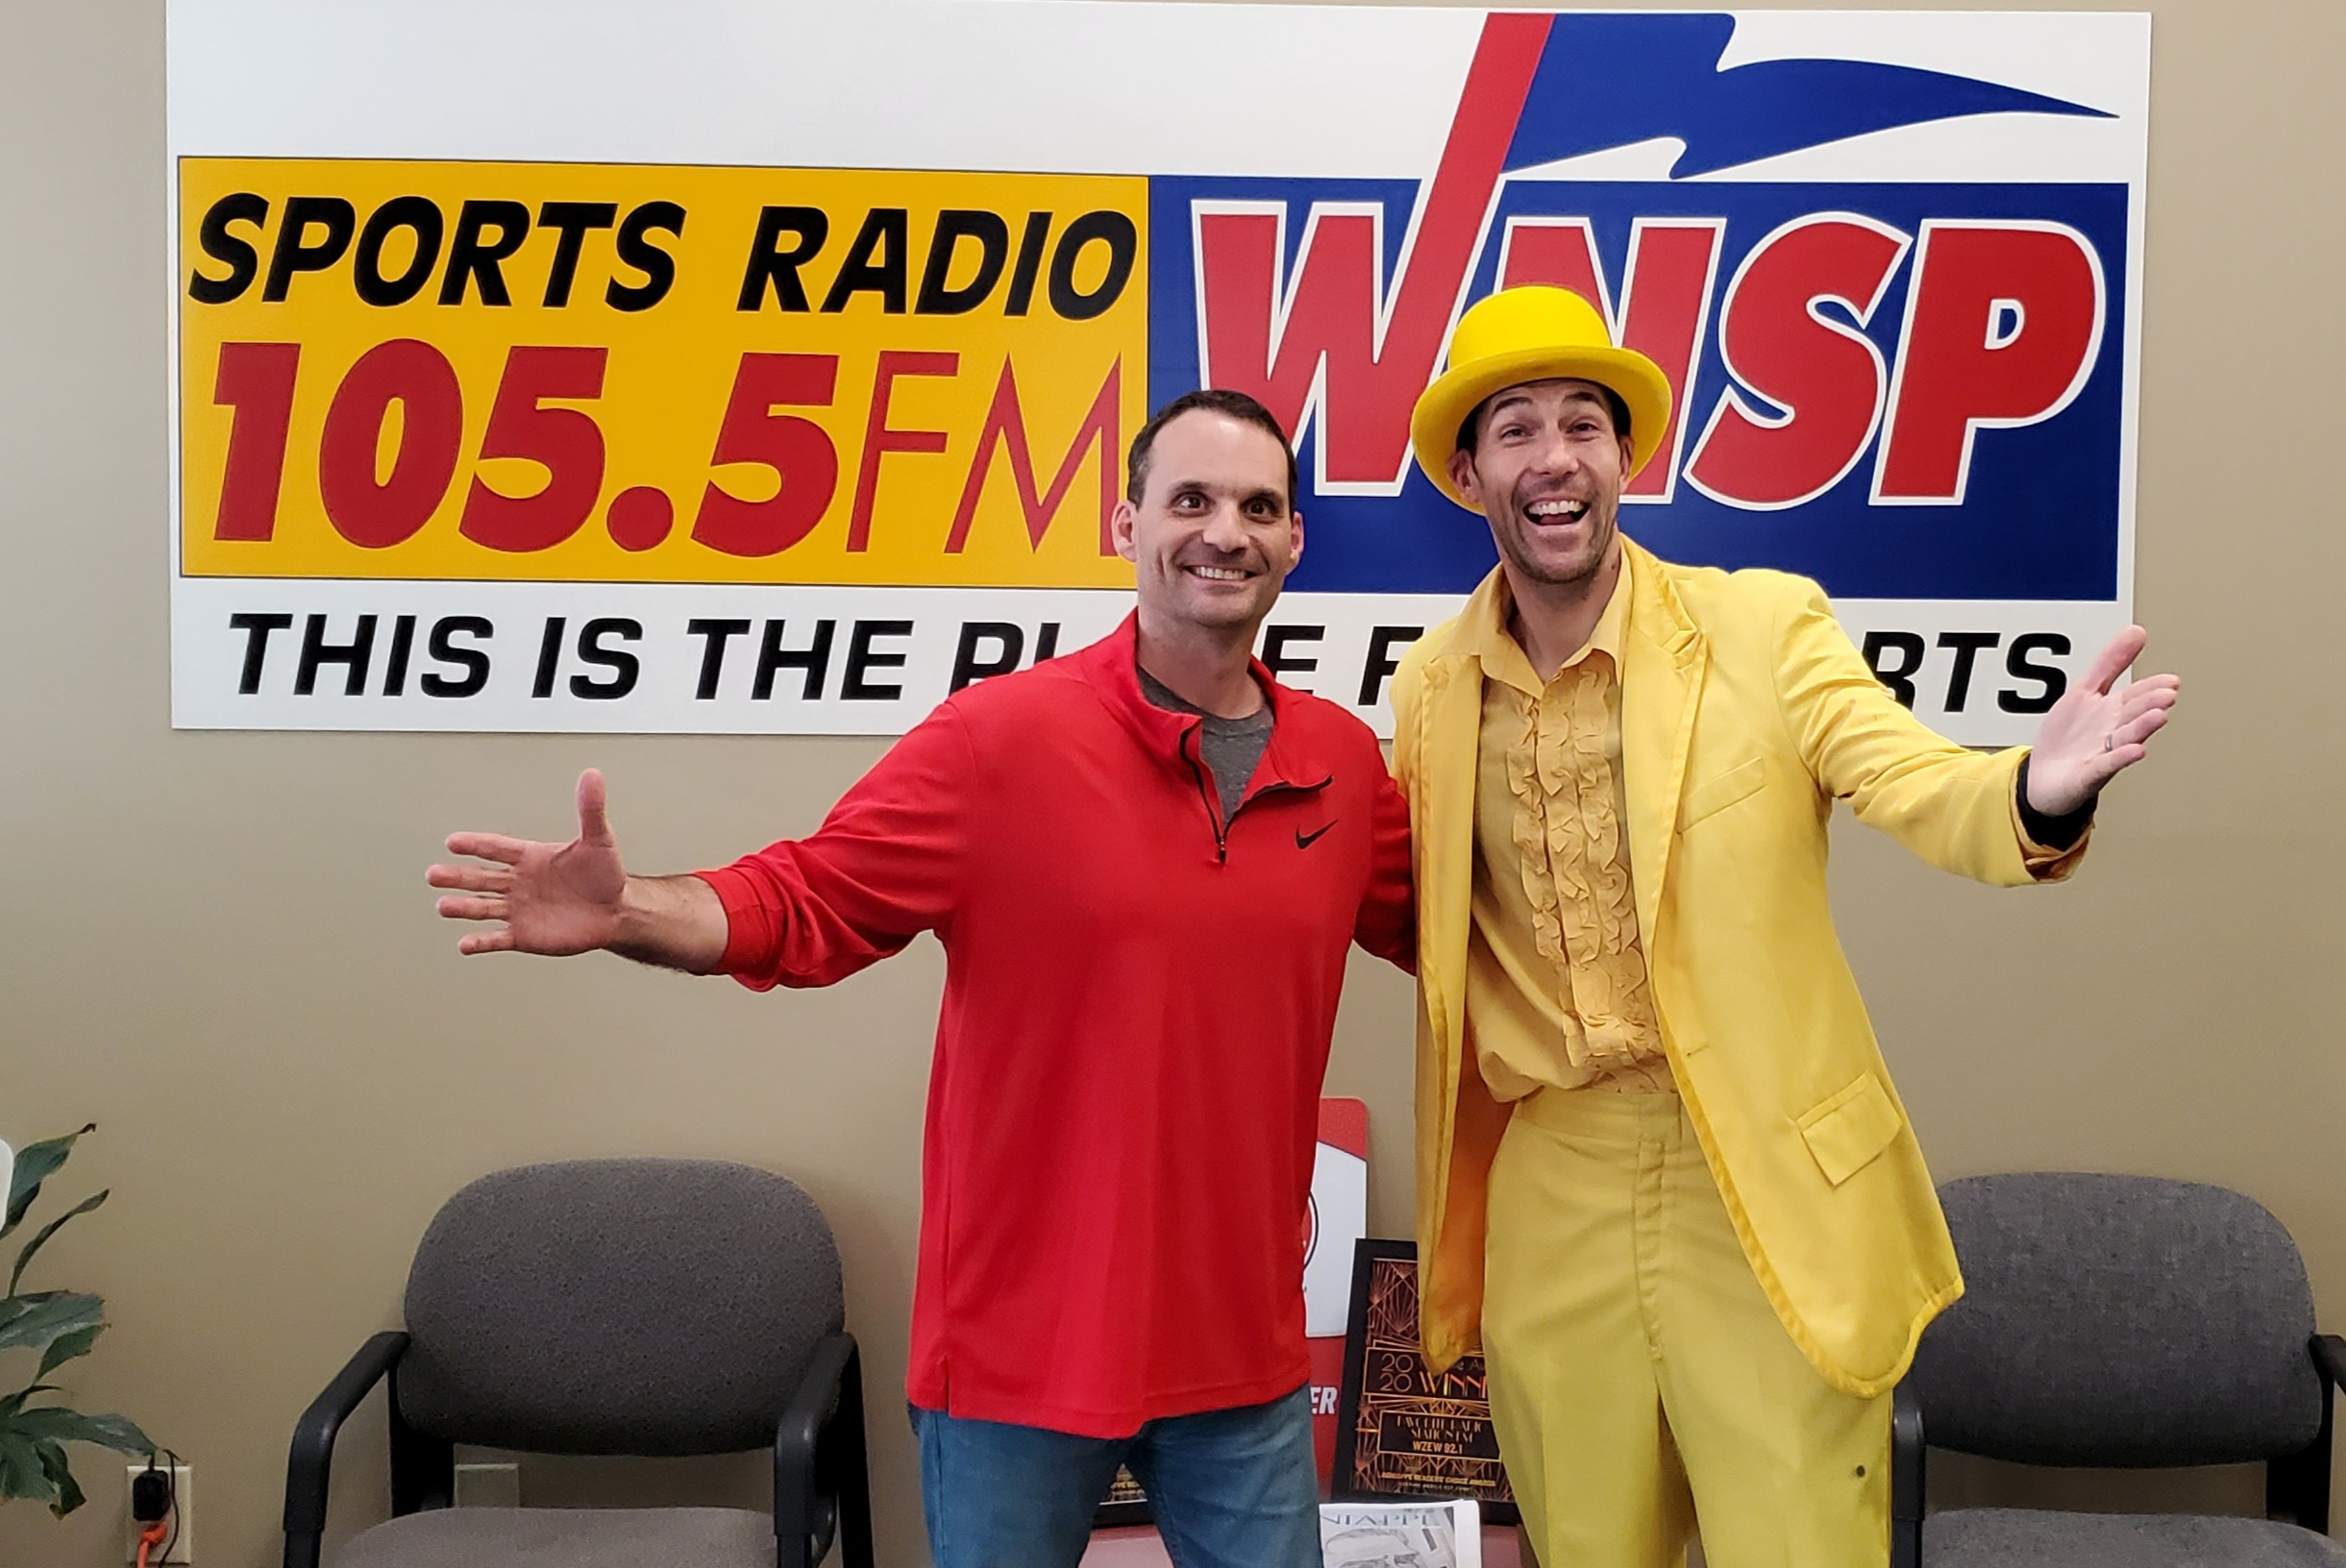 LISTEN: Jesse Cole tells you everything you need to know about the Savannah Bananas and their visit to Mobile!